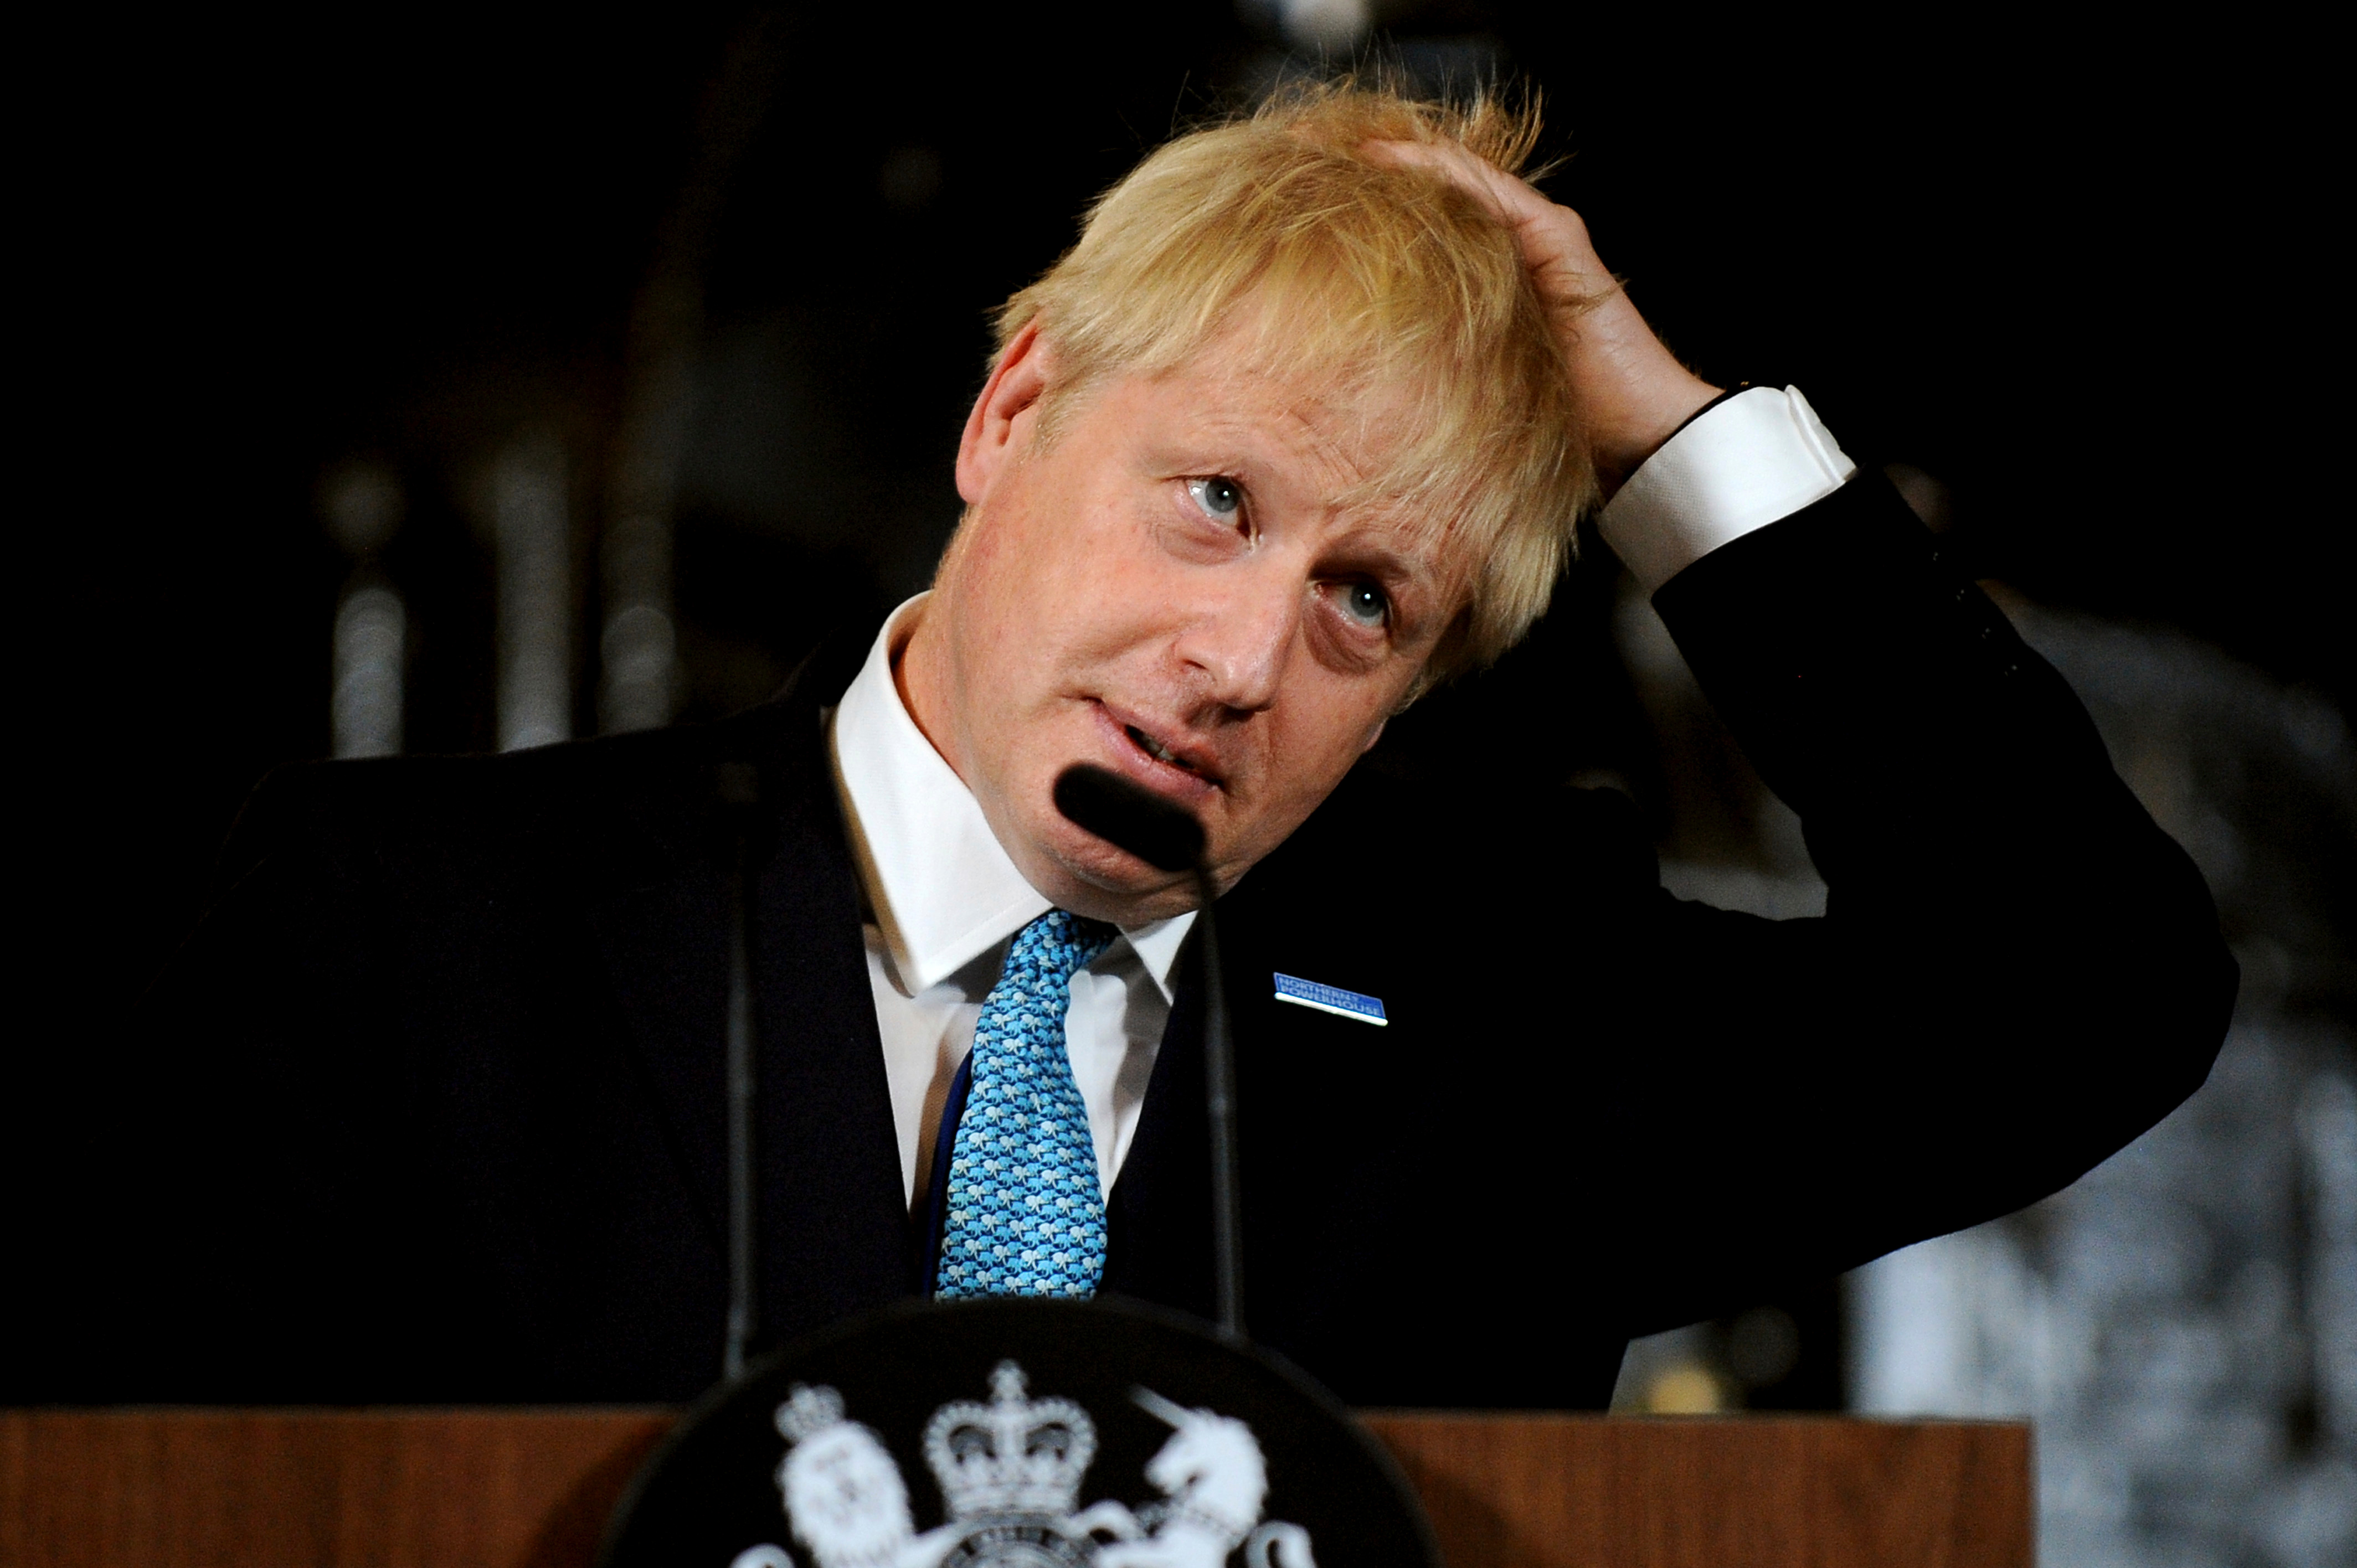 Britain's Prime Minister Boris Johnson during a speech on domestic priorities at the Science and Industry Museum in Manchester, England, . Economists have warned that leaving the European bloc without an agreement in under 100-days would disrupt trade to impact on finances and investmentConservatives, Manchester, United Kingdom - 27 Jul 2019